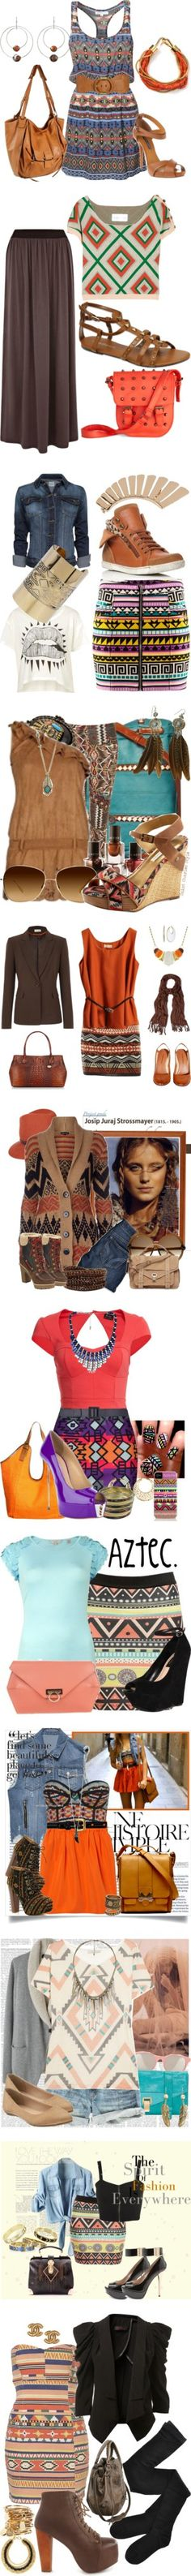 """Aztec Prints"" by randijasminephoto on Polyvore"